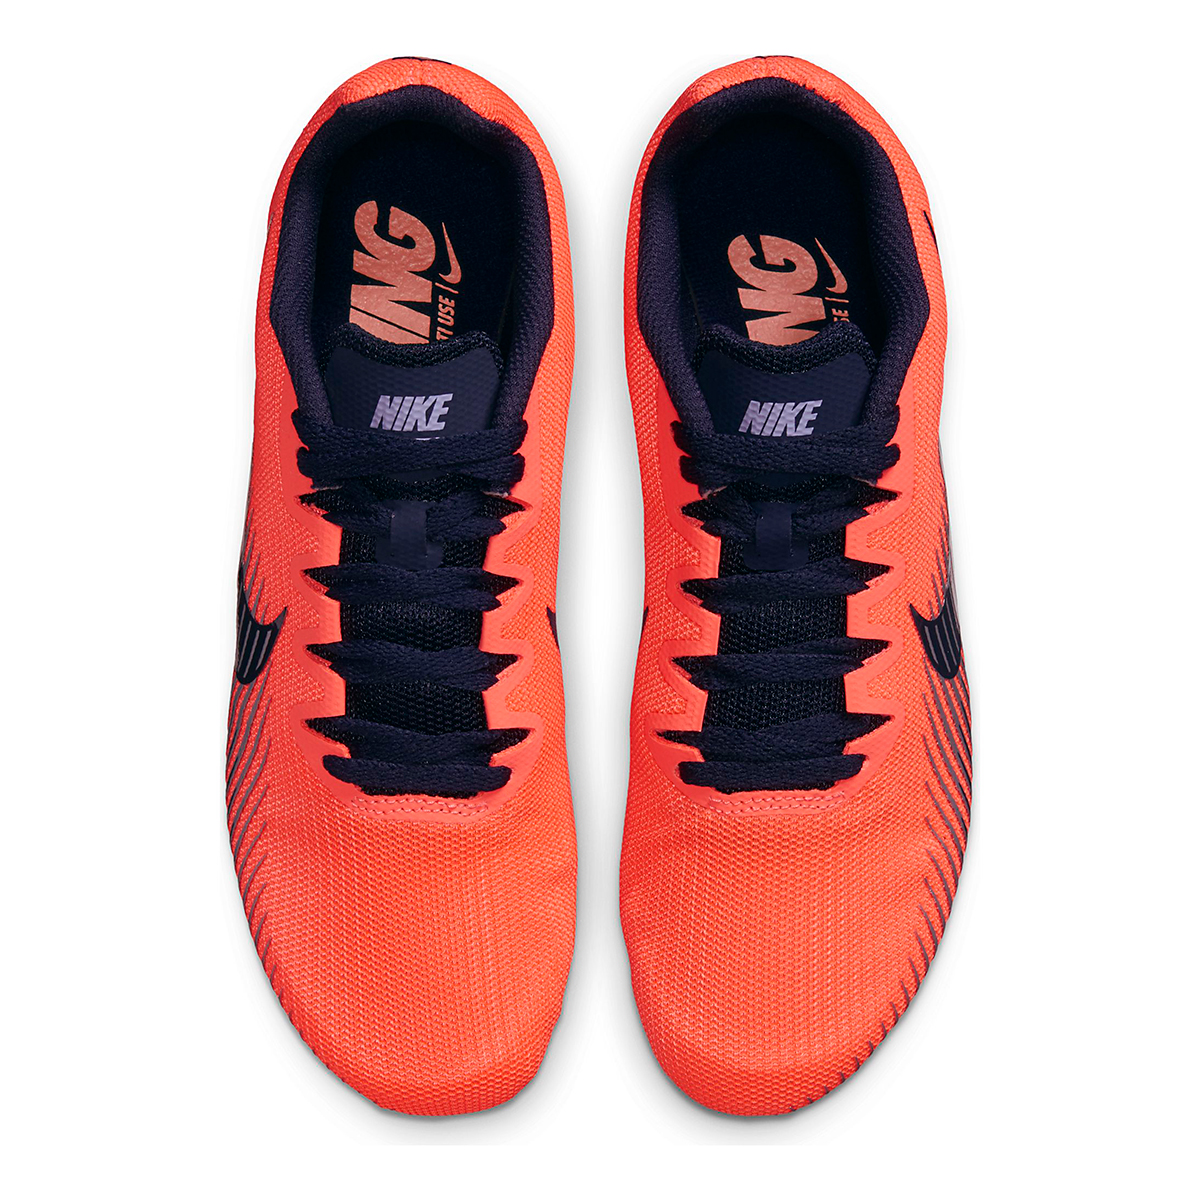 Women's Nike Zoom Rival M 9 Track Spikes - Color: Bright Mango/Blackend Blue - Size: 4 - Width: Regular, Bright Mango/Blackend Blue, large, image 4